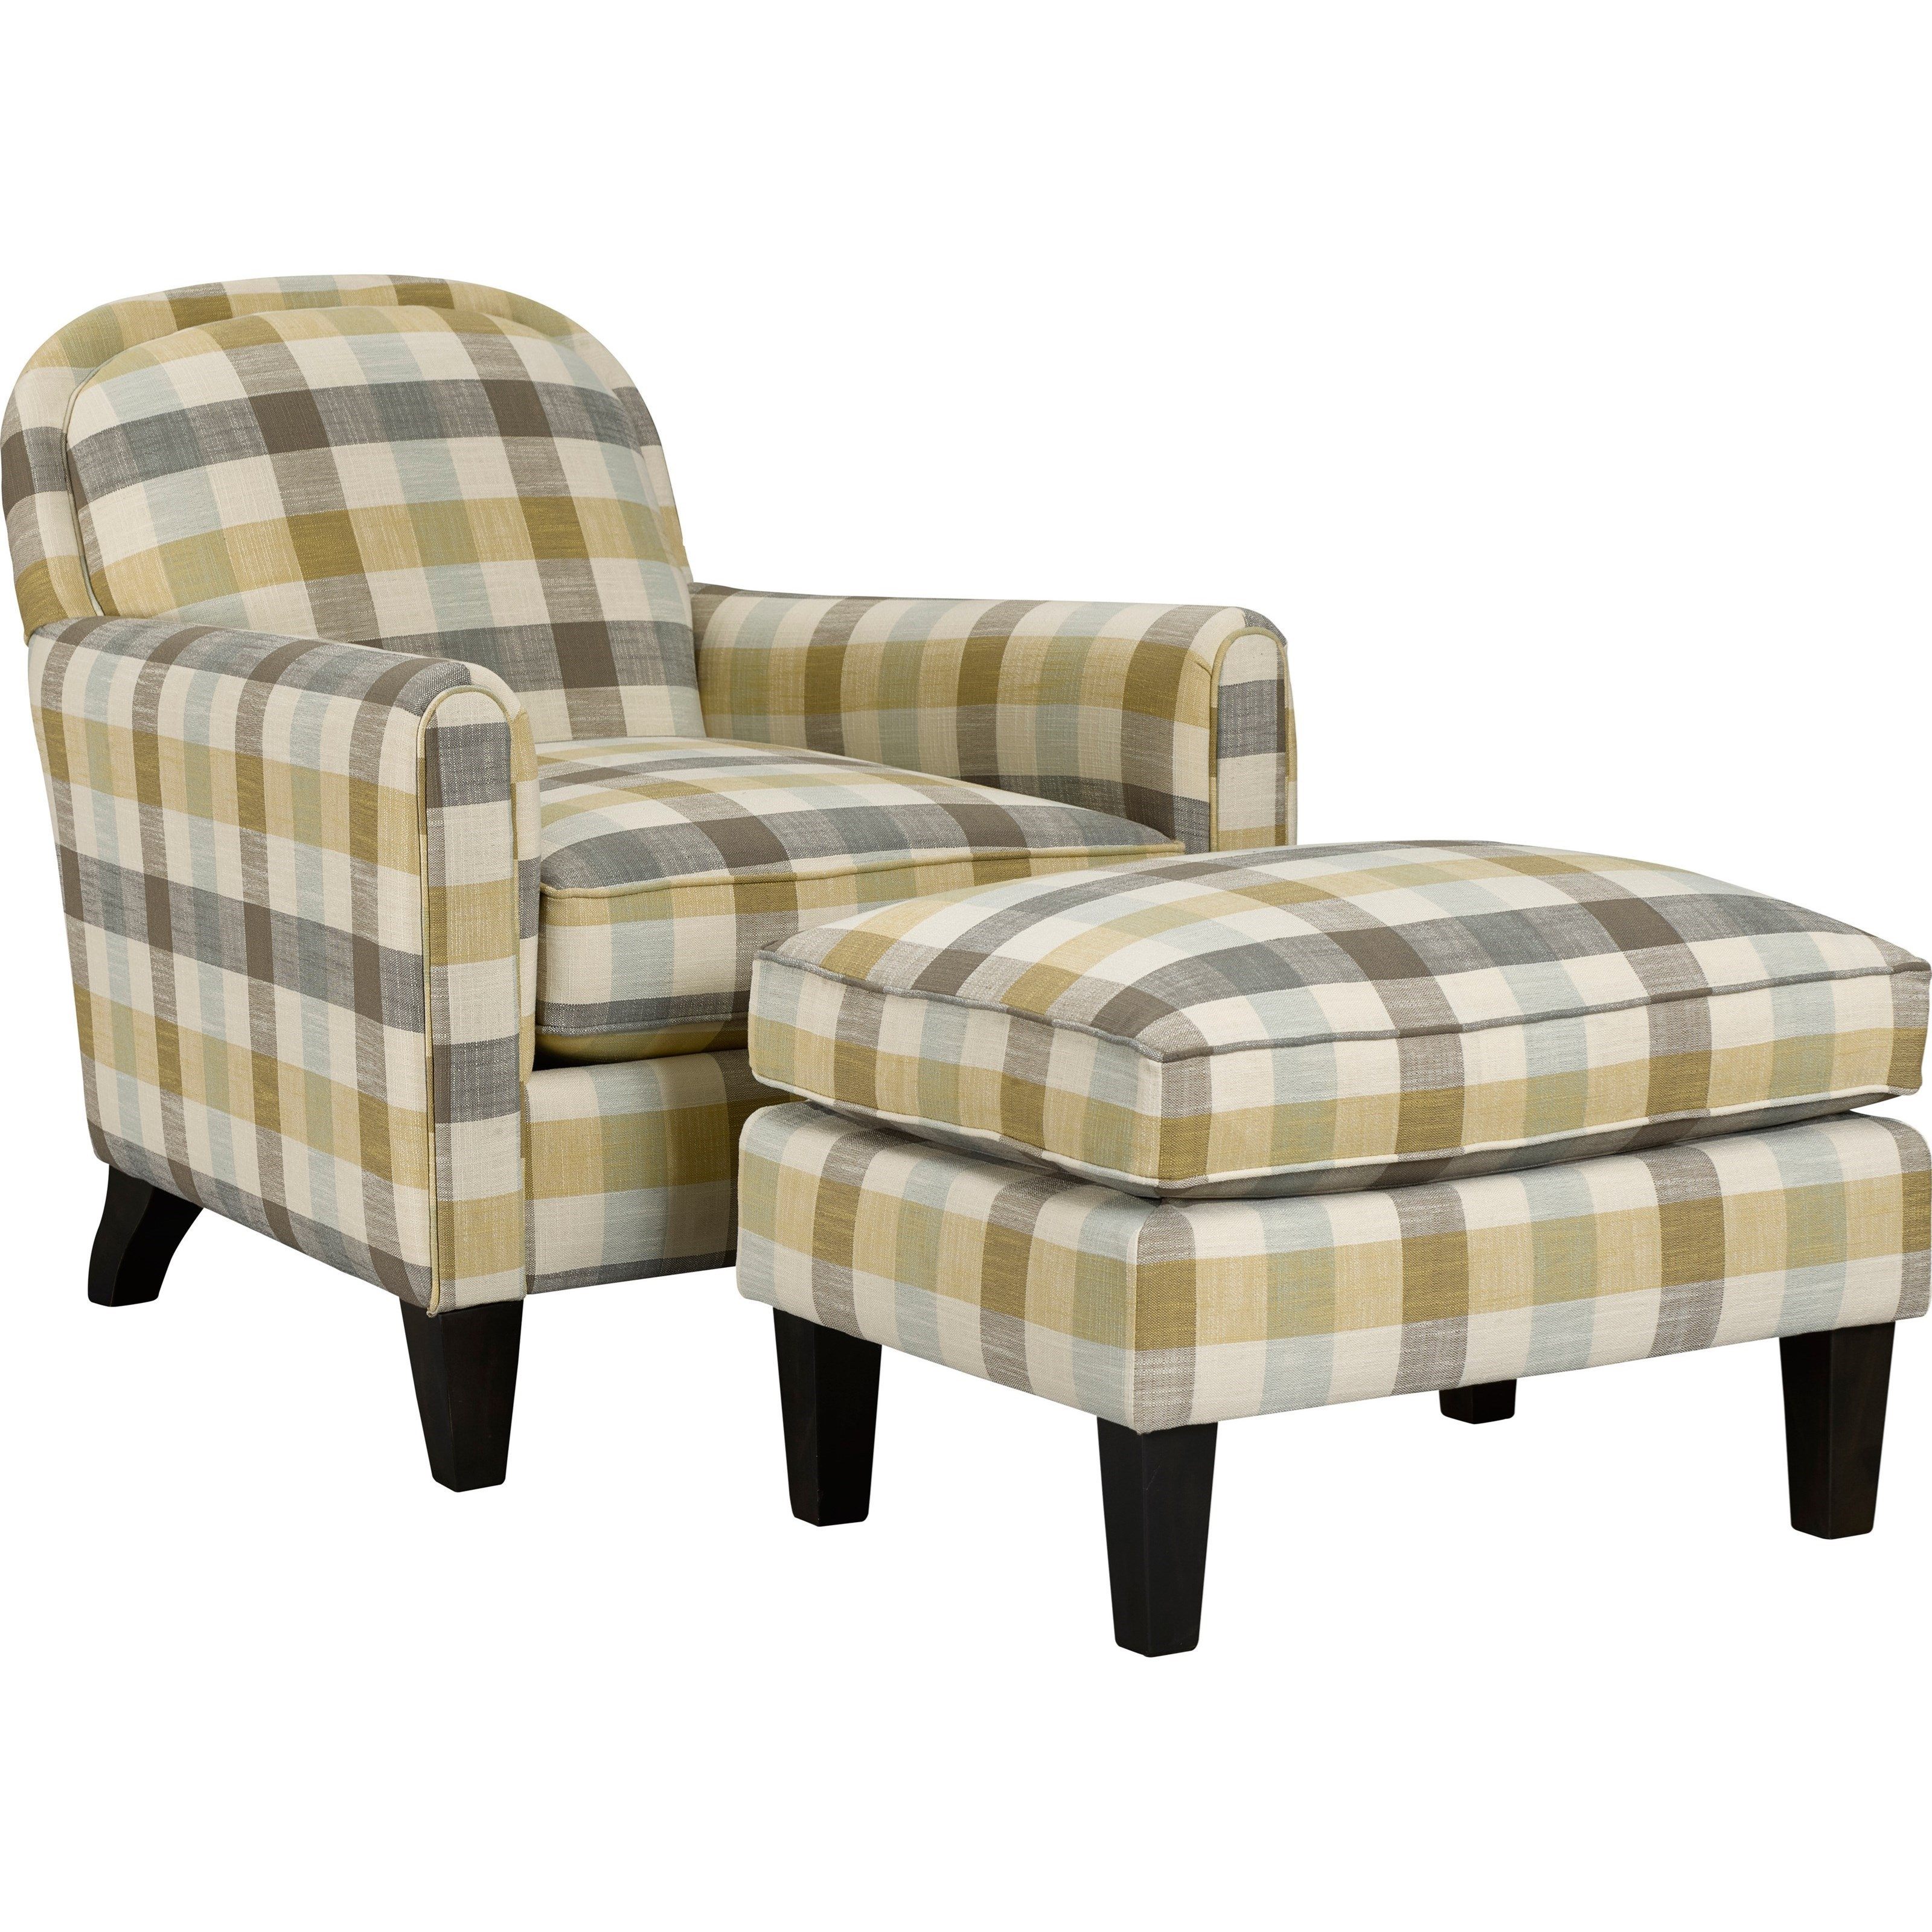 Attrayant Broyhill Furniture Personalities Accent ChairsSquire Chair And Ottoman ...